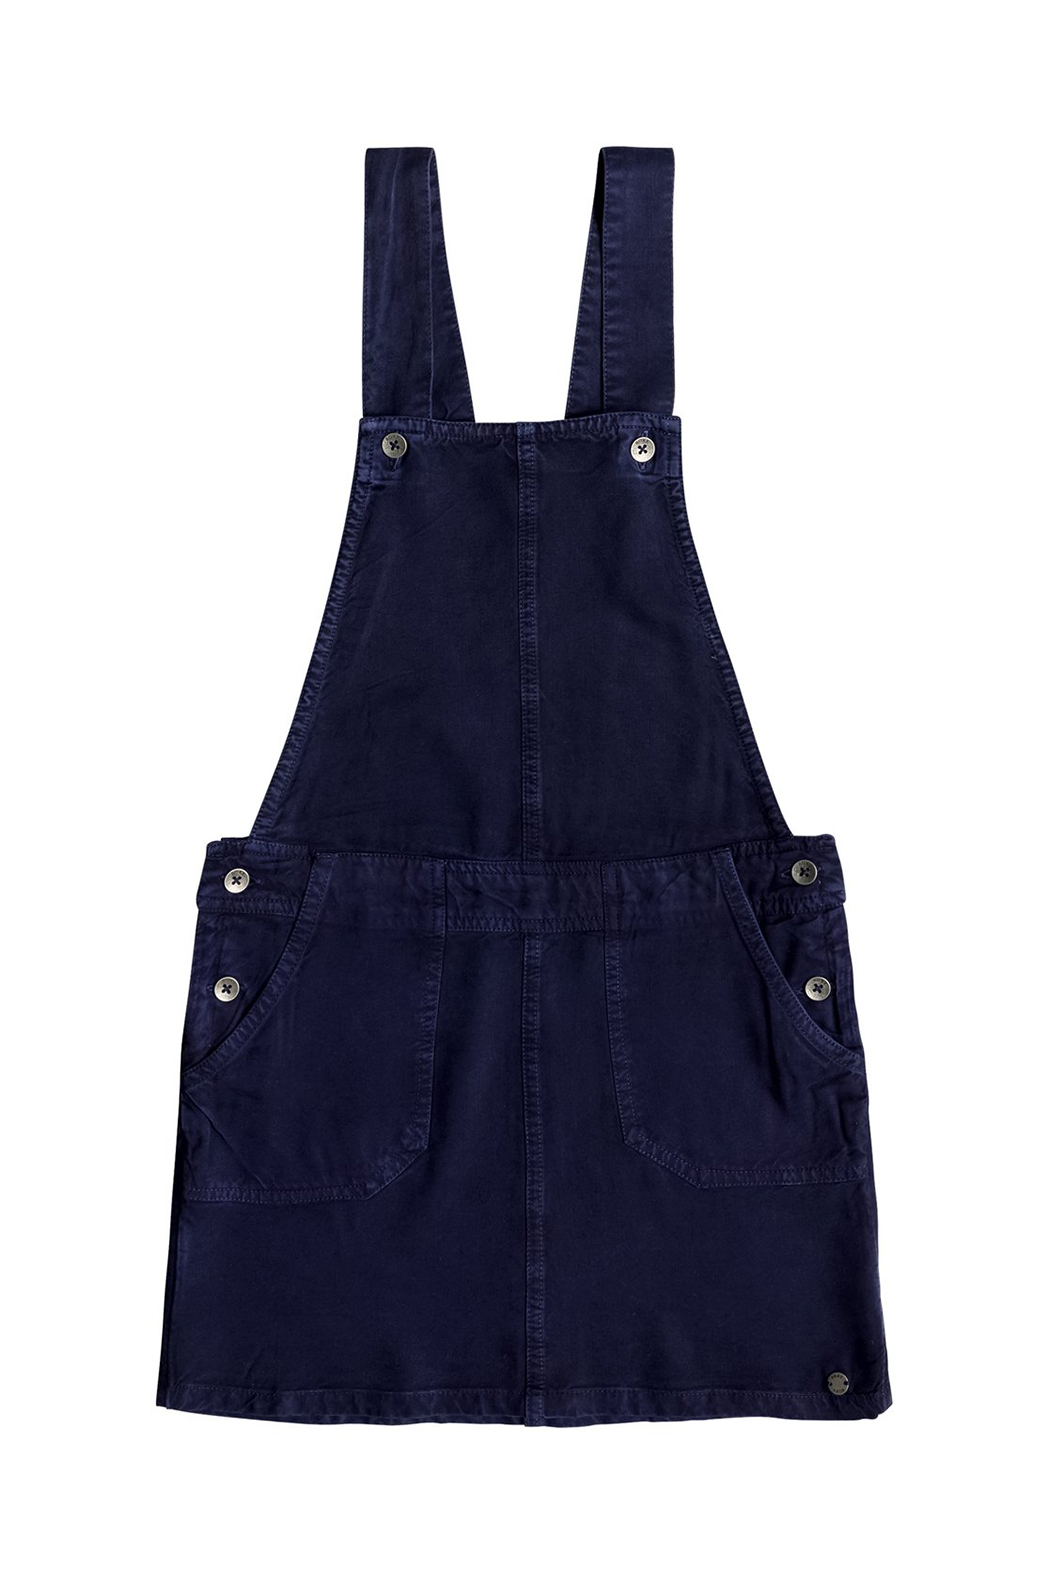 Roxy Summers End Dungaree Dress - Main Image